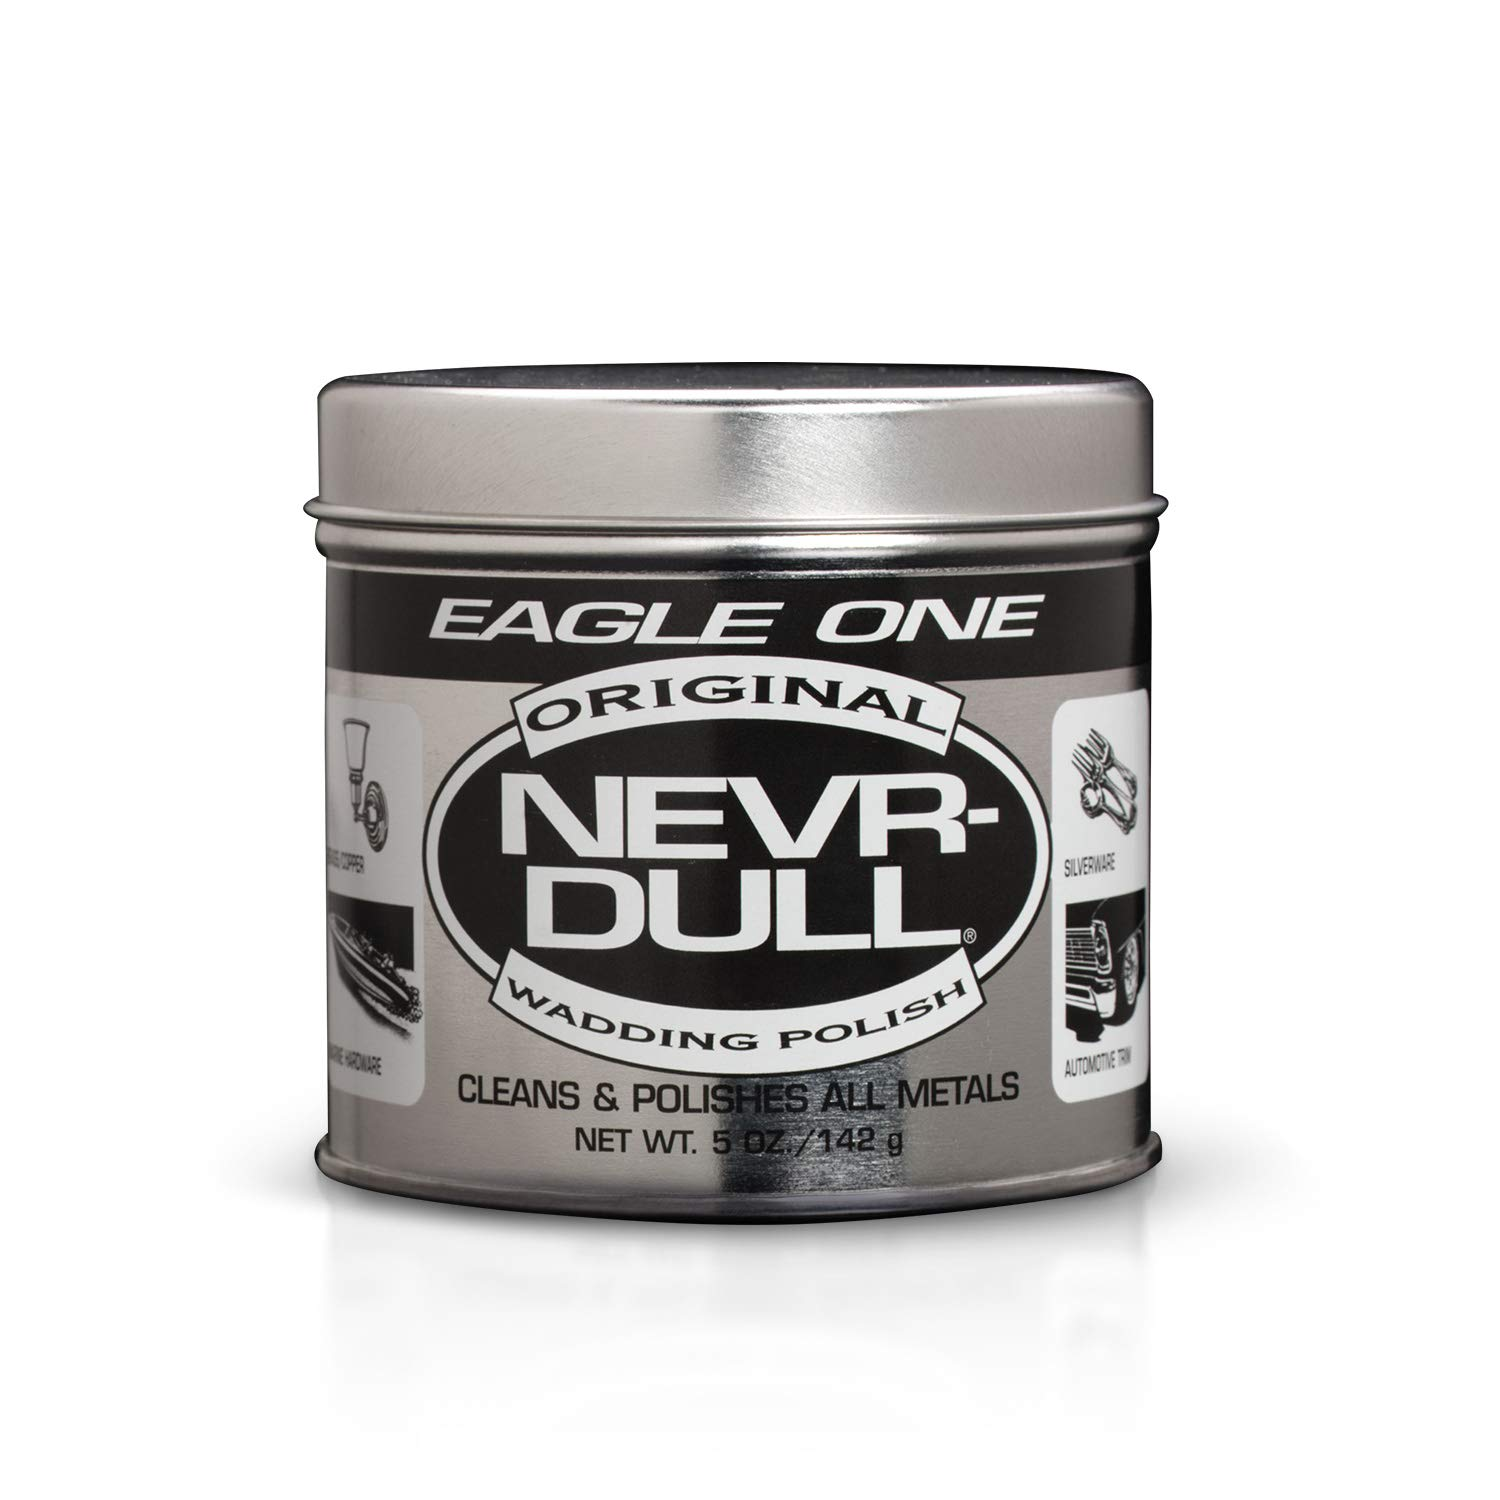 Eagle One Nevr-Dull Wadding Metal Polish, Chrome Restoration, For Wheels and More, 5 Ounce Jar